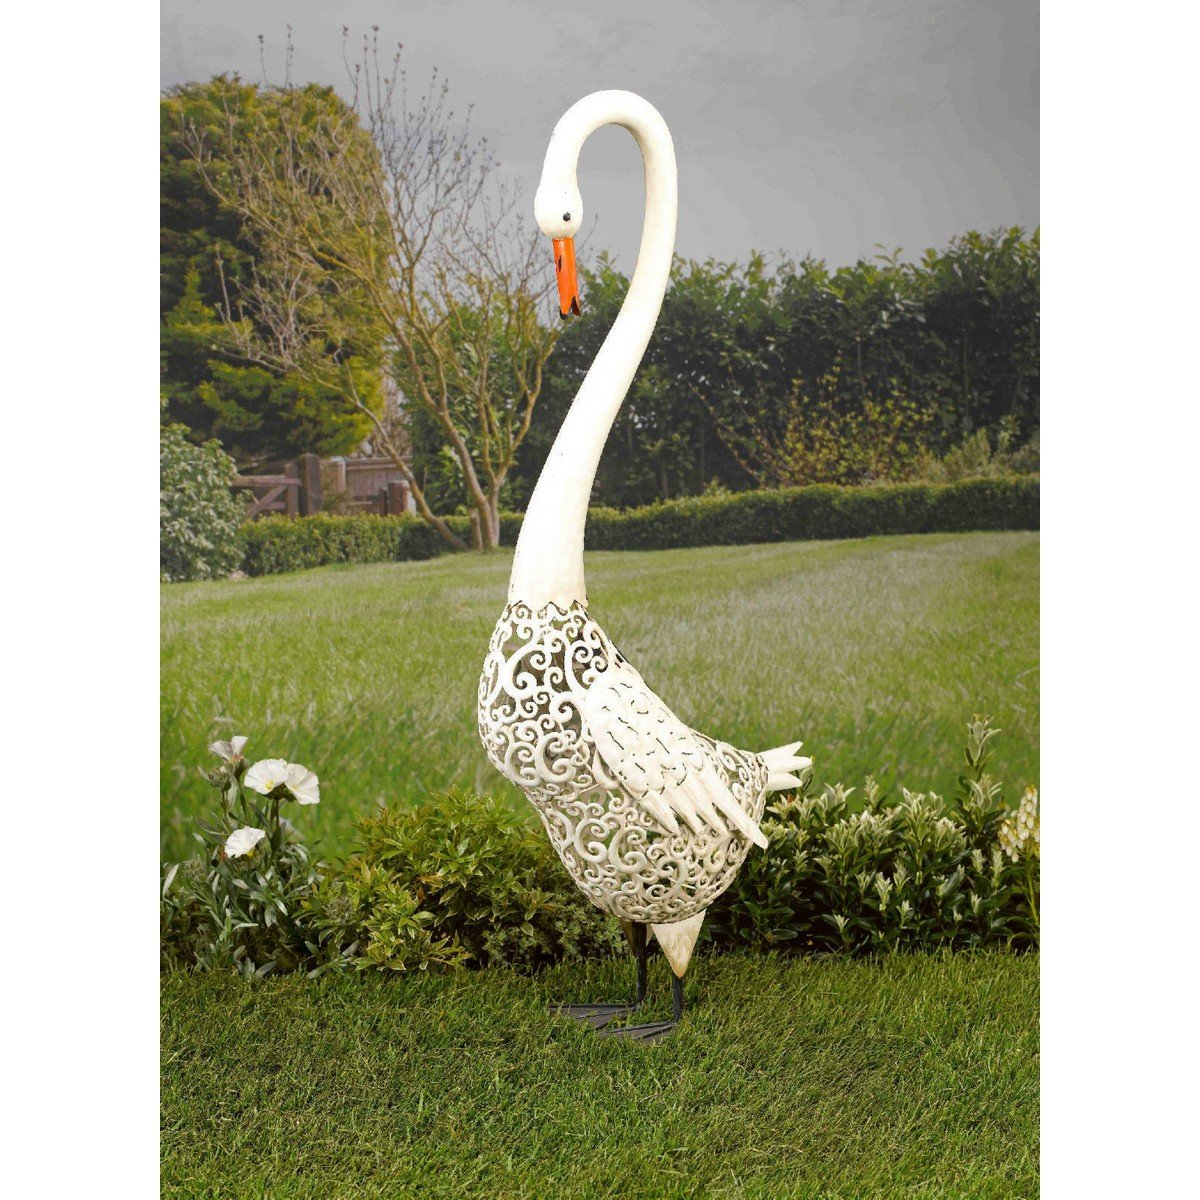 Smart Solar Metal Silhouette Swan Garden LED Ornament Light